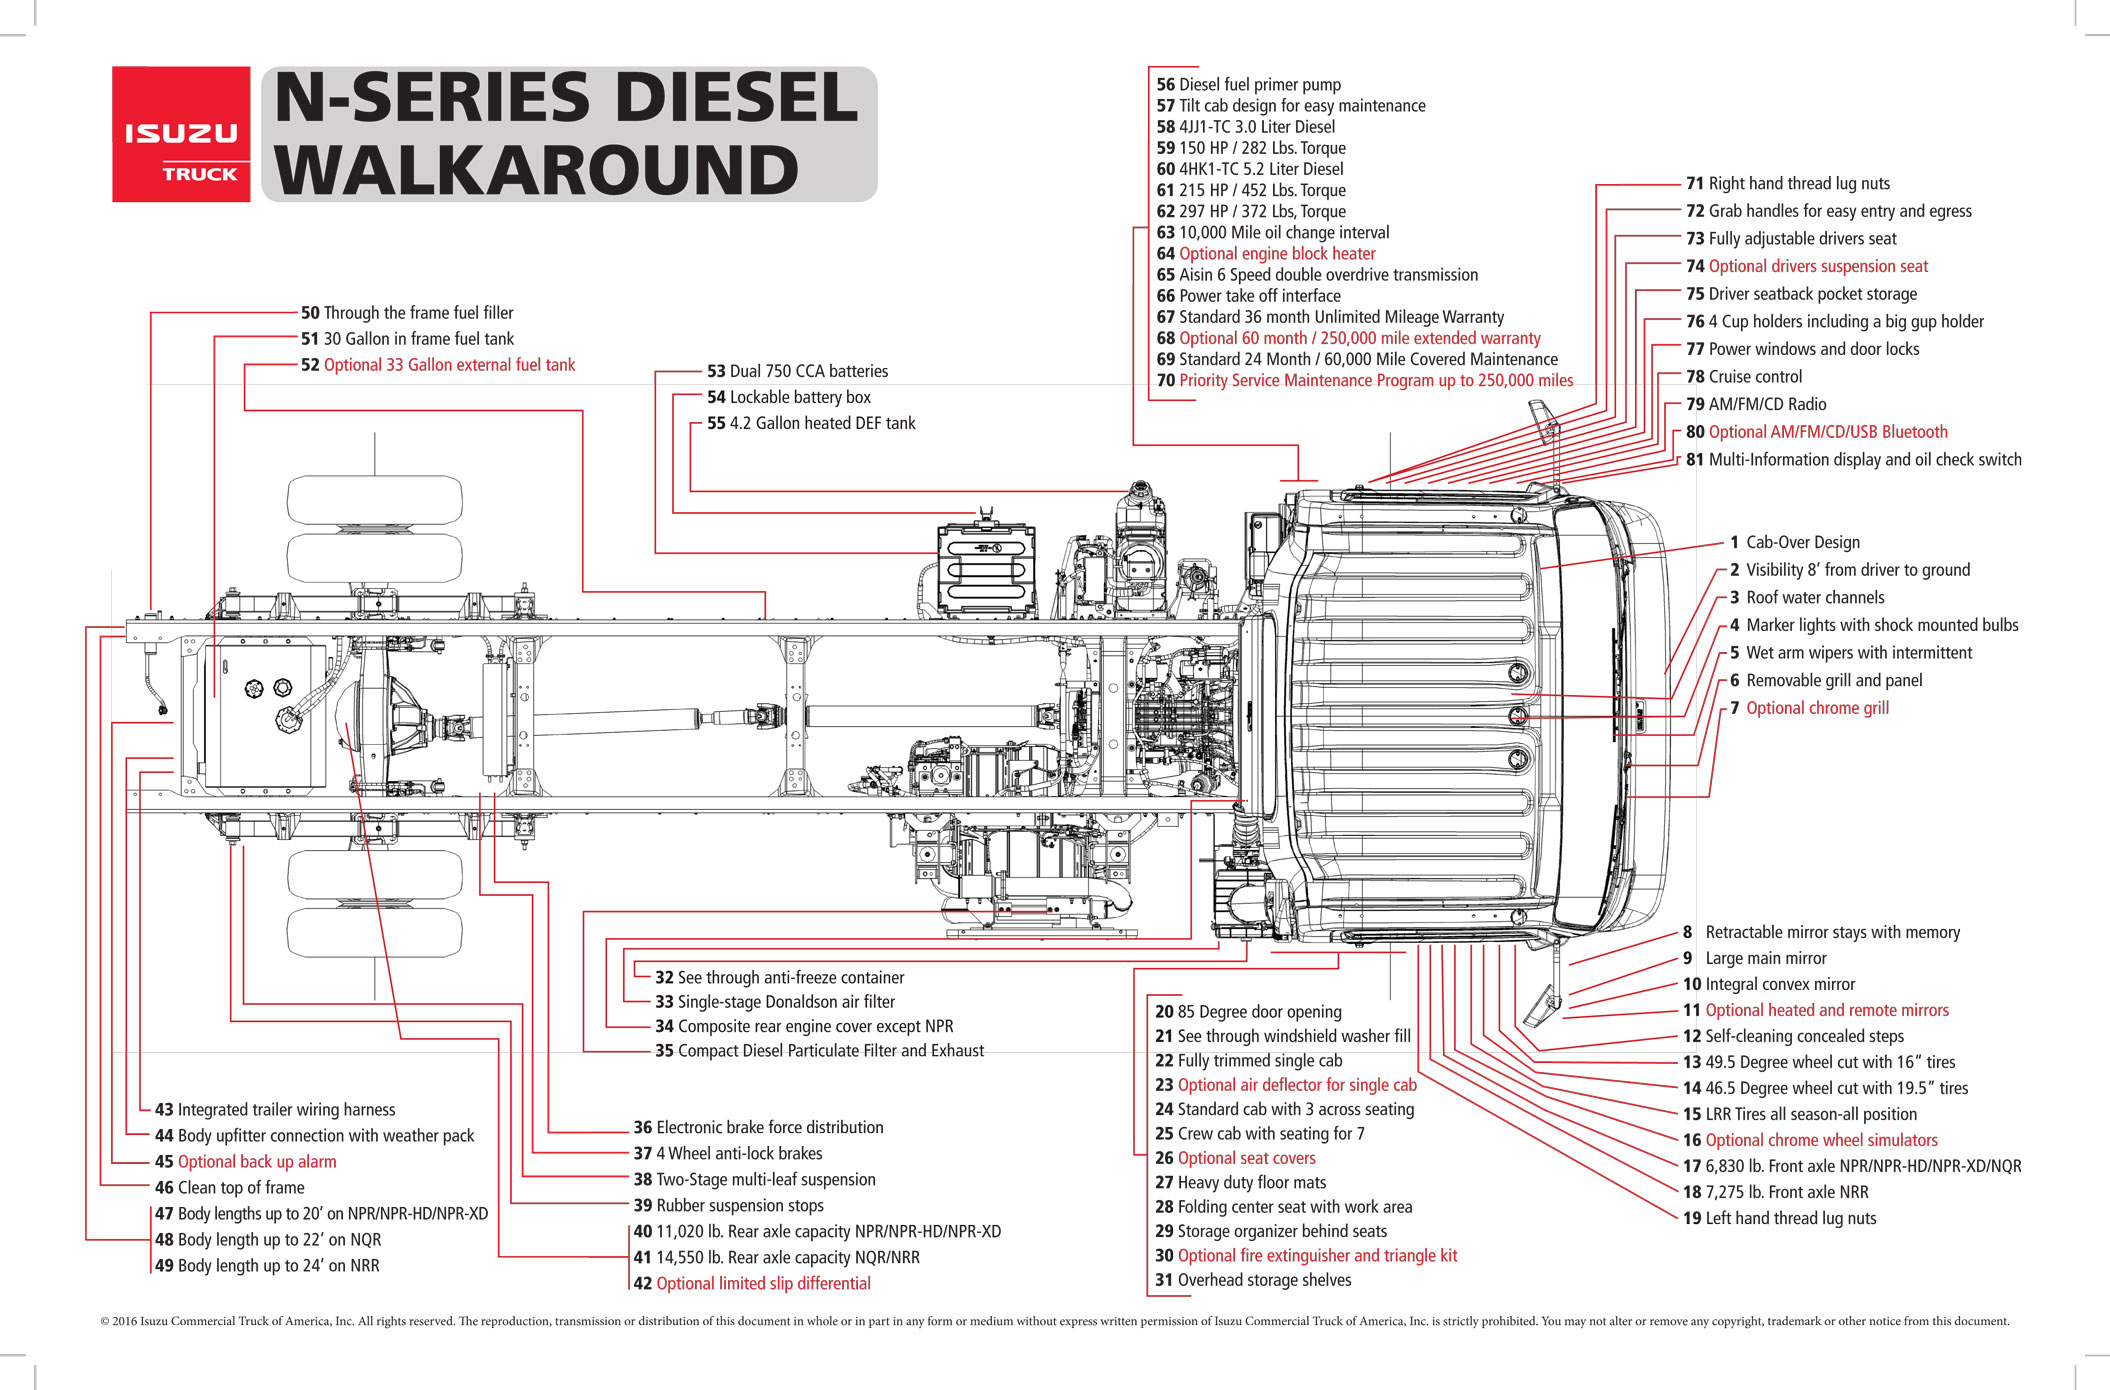 2001 isuzu npr wiring diagram 2001 image wiring 2001 isuzu npr wiring diagram 2001 auto wiring diagram schematic on 2001 isuzu npr wiring diagram